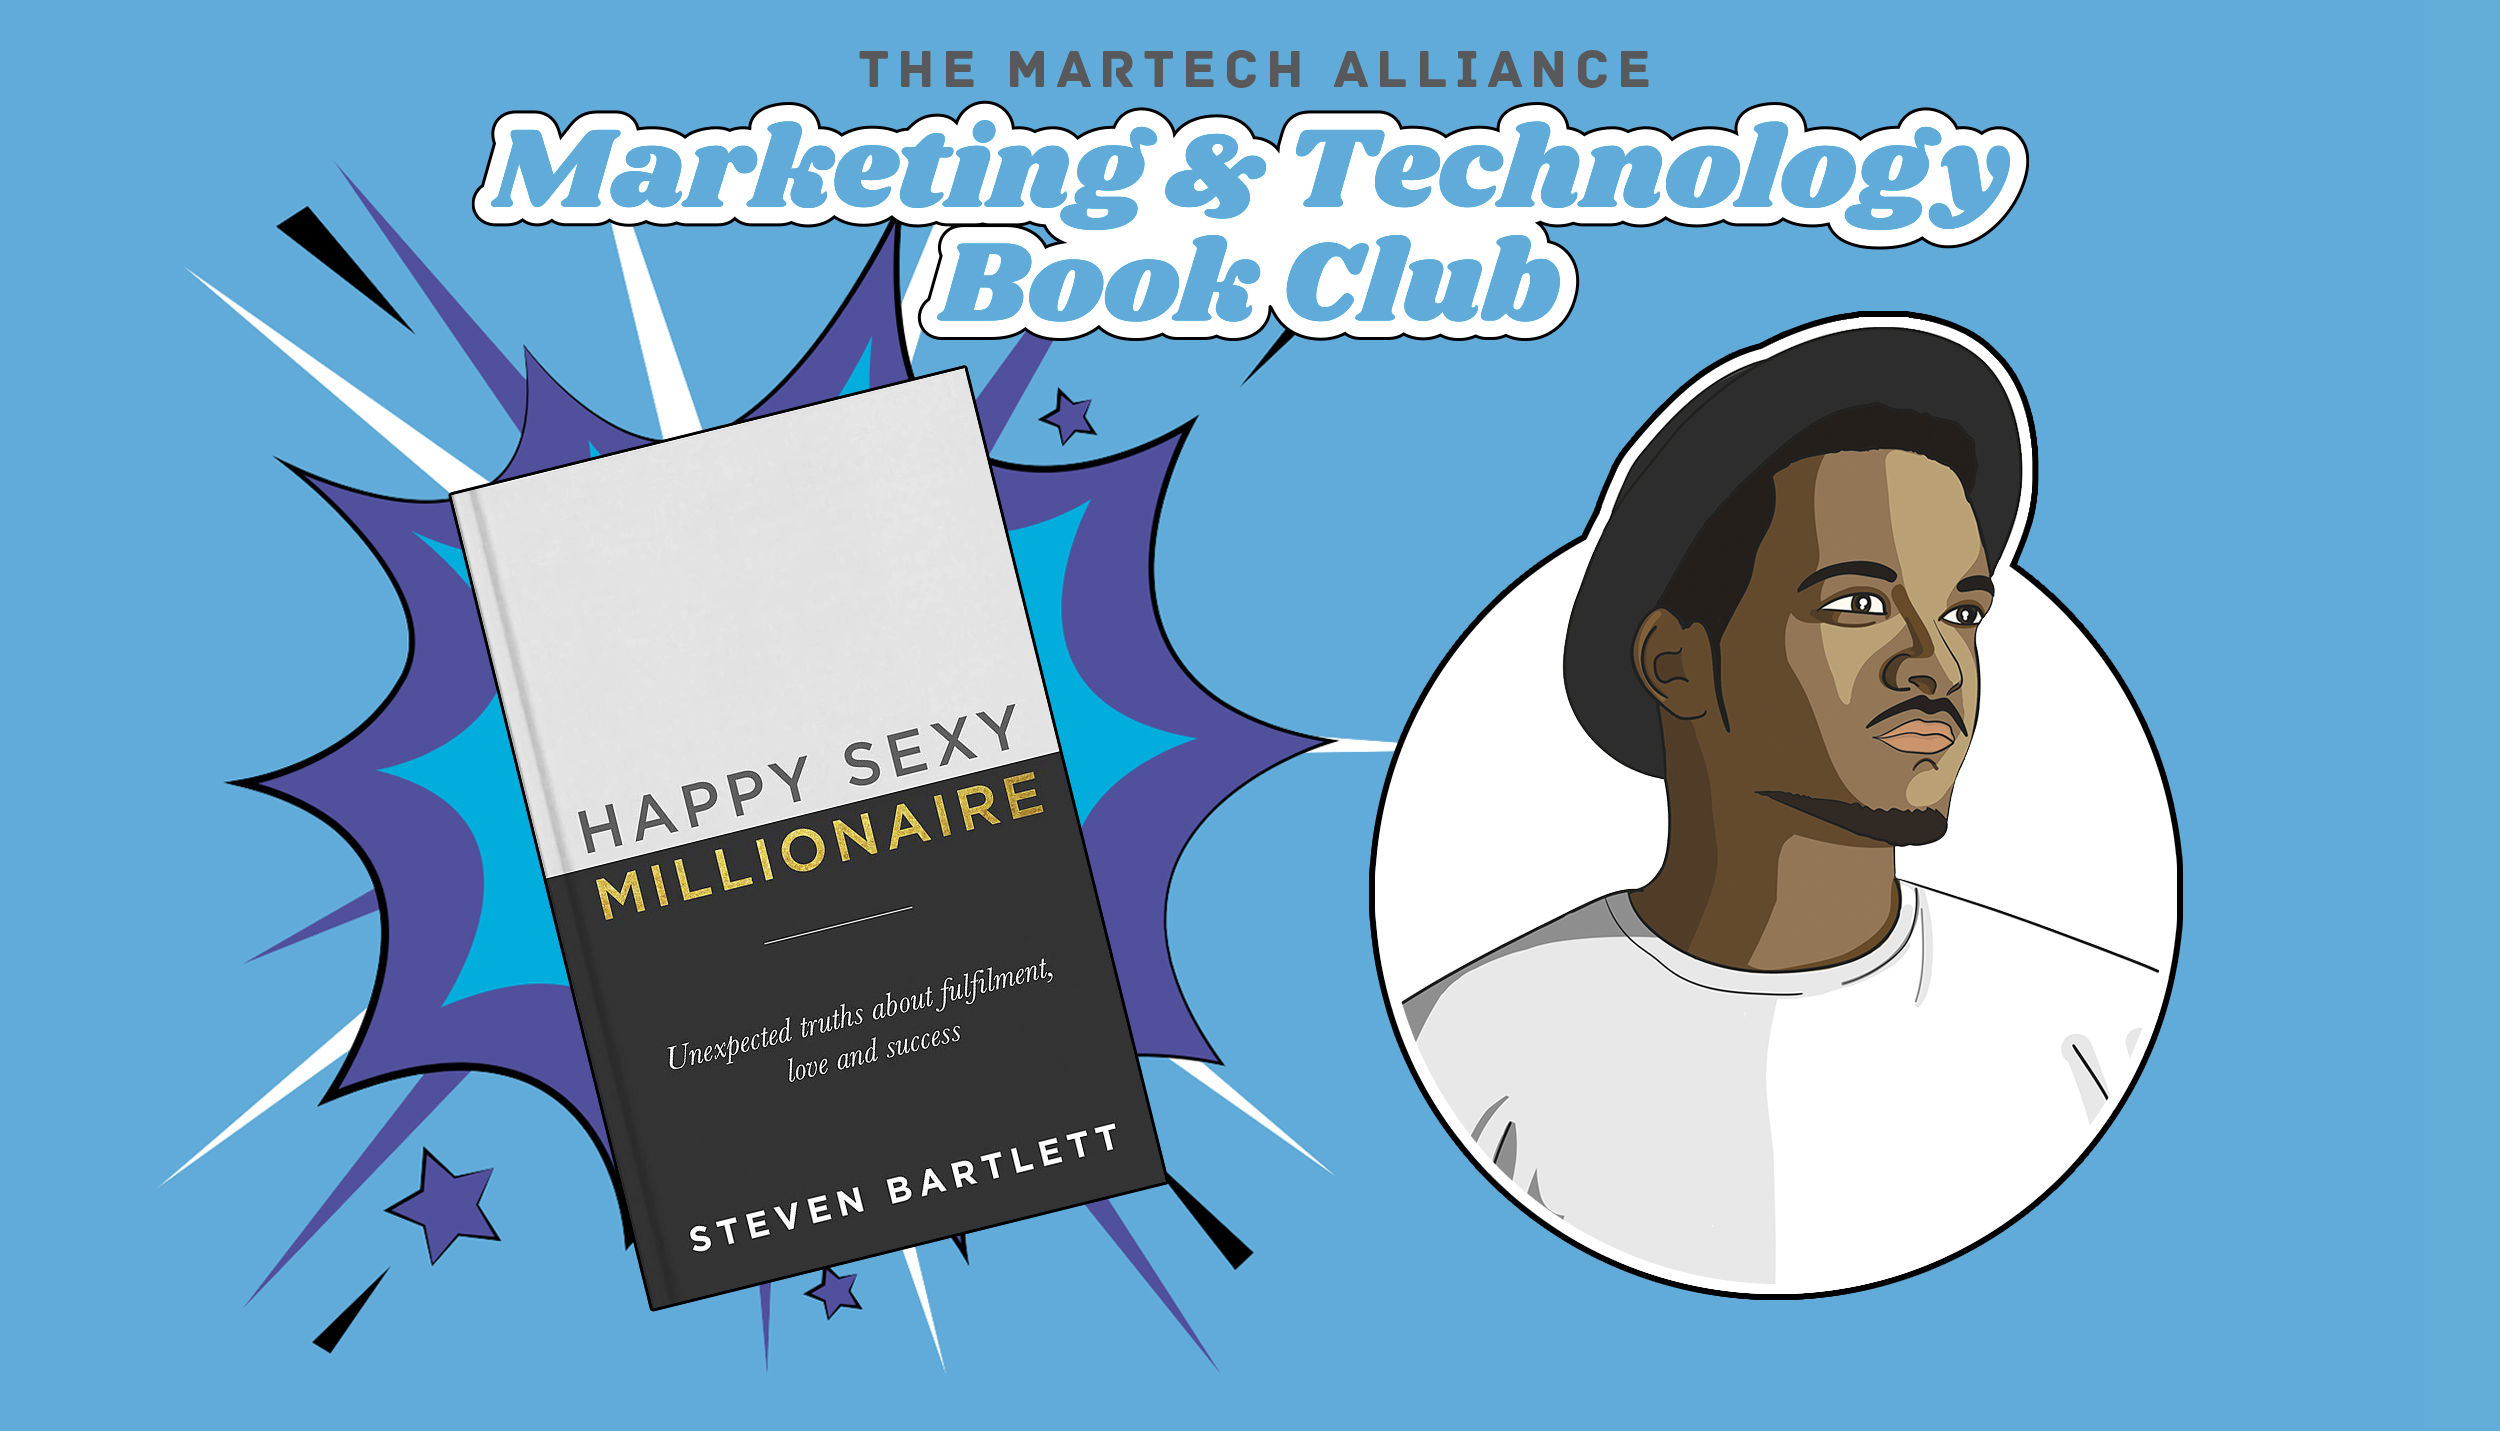 Book Of The Month - Happy Sexy Millionaire